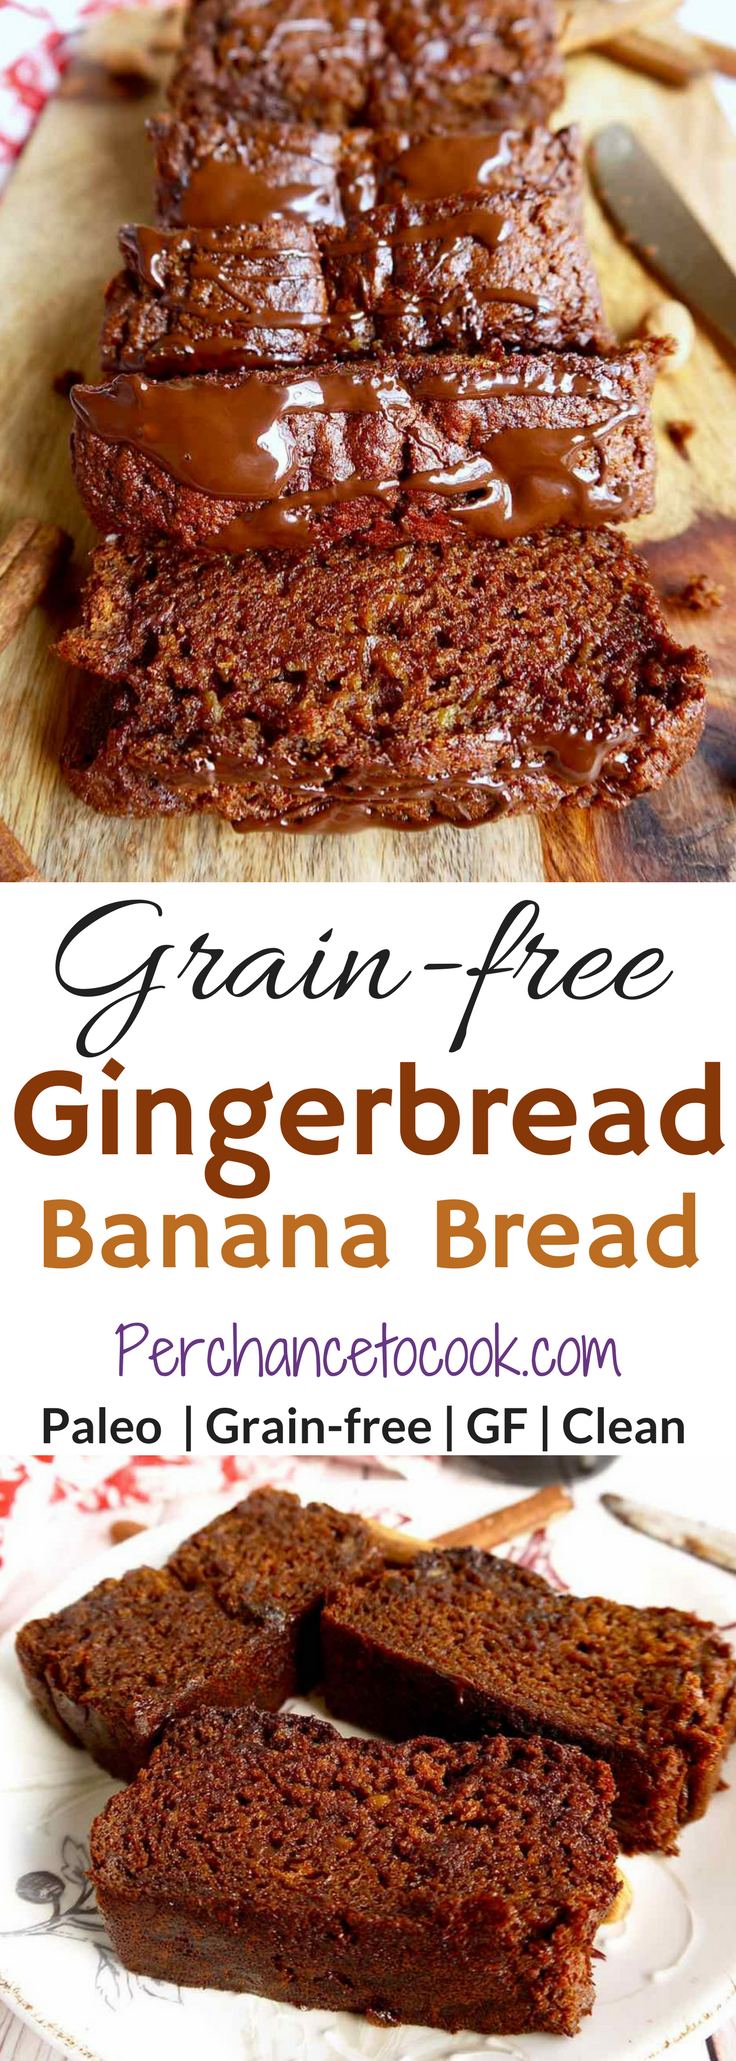 Grain Free Gingerbread Banana Bread Paleo Gf Perchance To Cook Www Perchancetocook Com